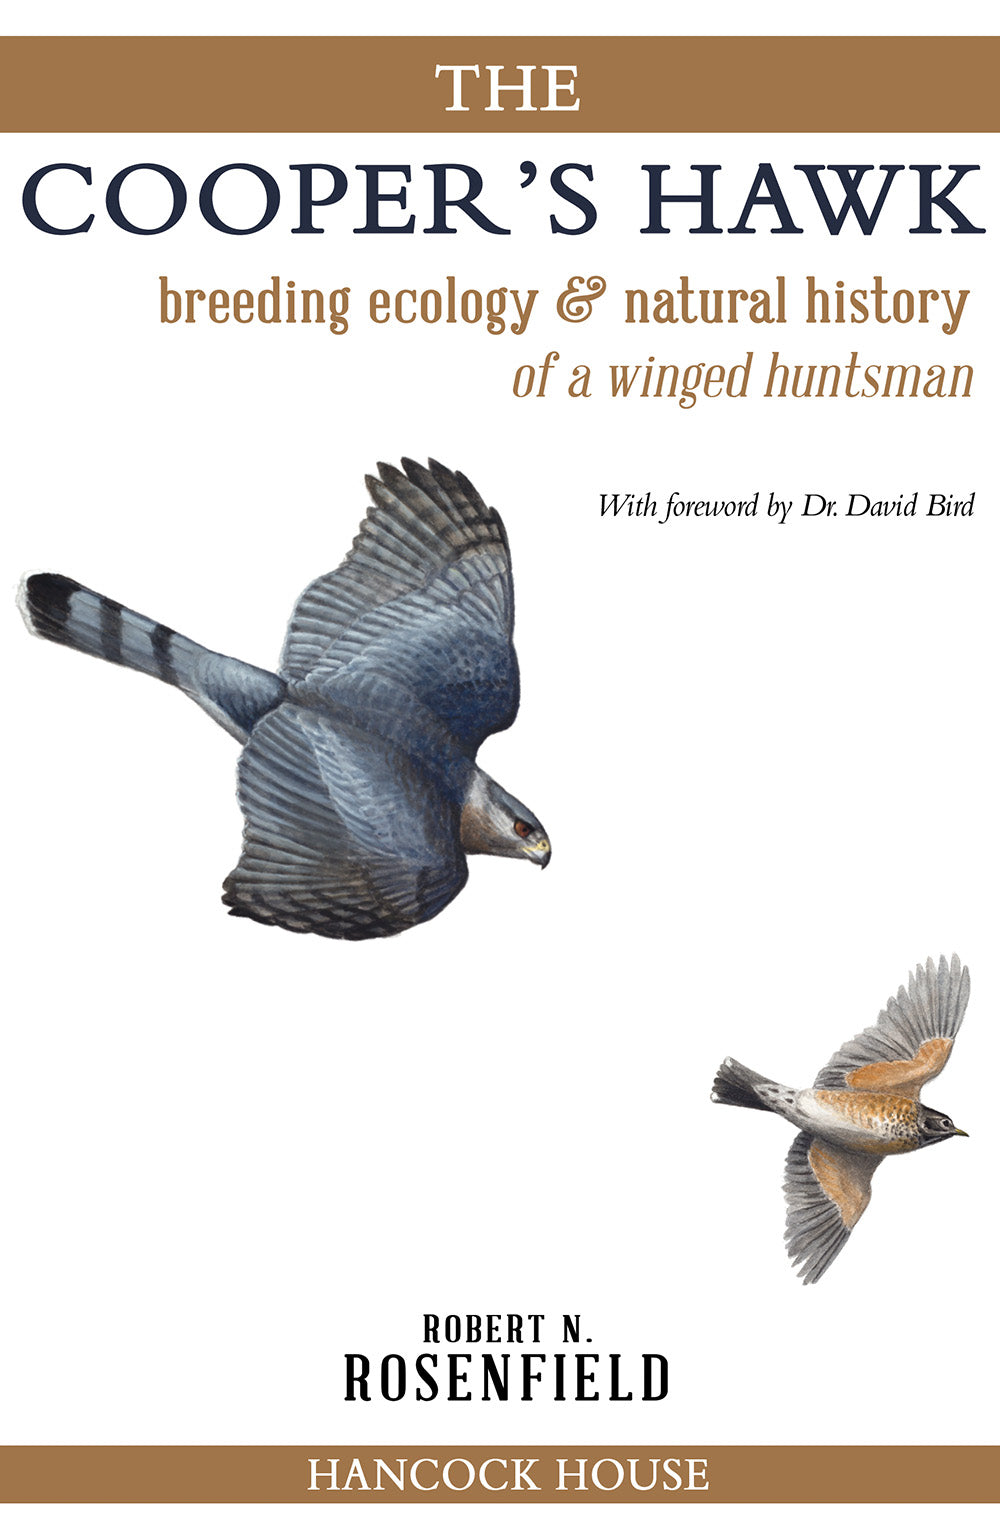 The Cooper's Hawk: breeding ecology & natural history of the winged huntsman